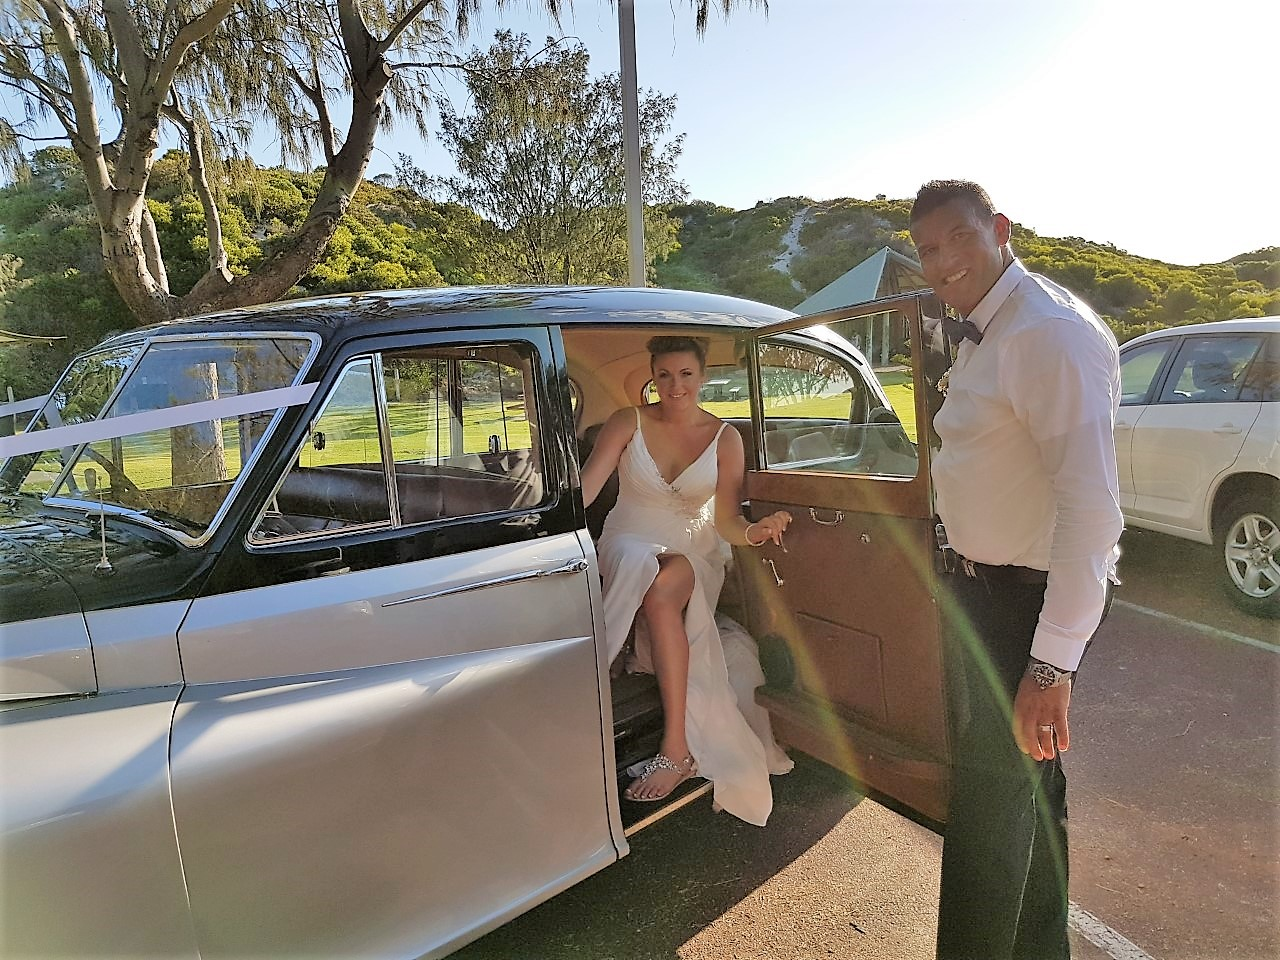 21-Kate_and_Ray_with_Very_Nice_Classics_wedding_cars_for_the_beach_wedding.jpg